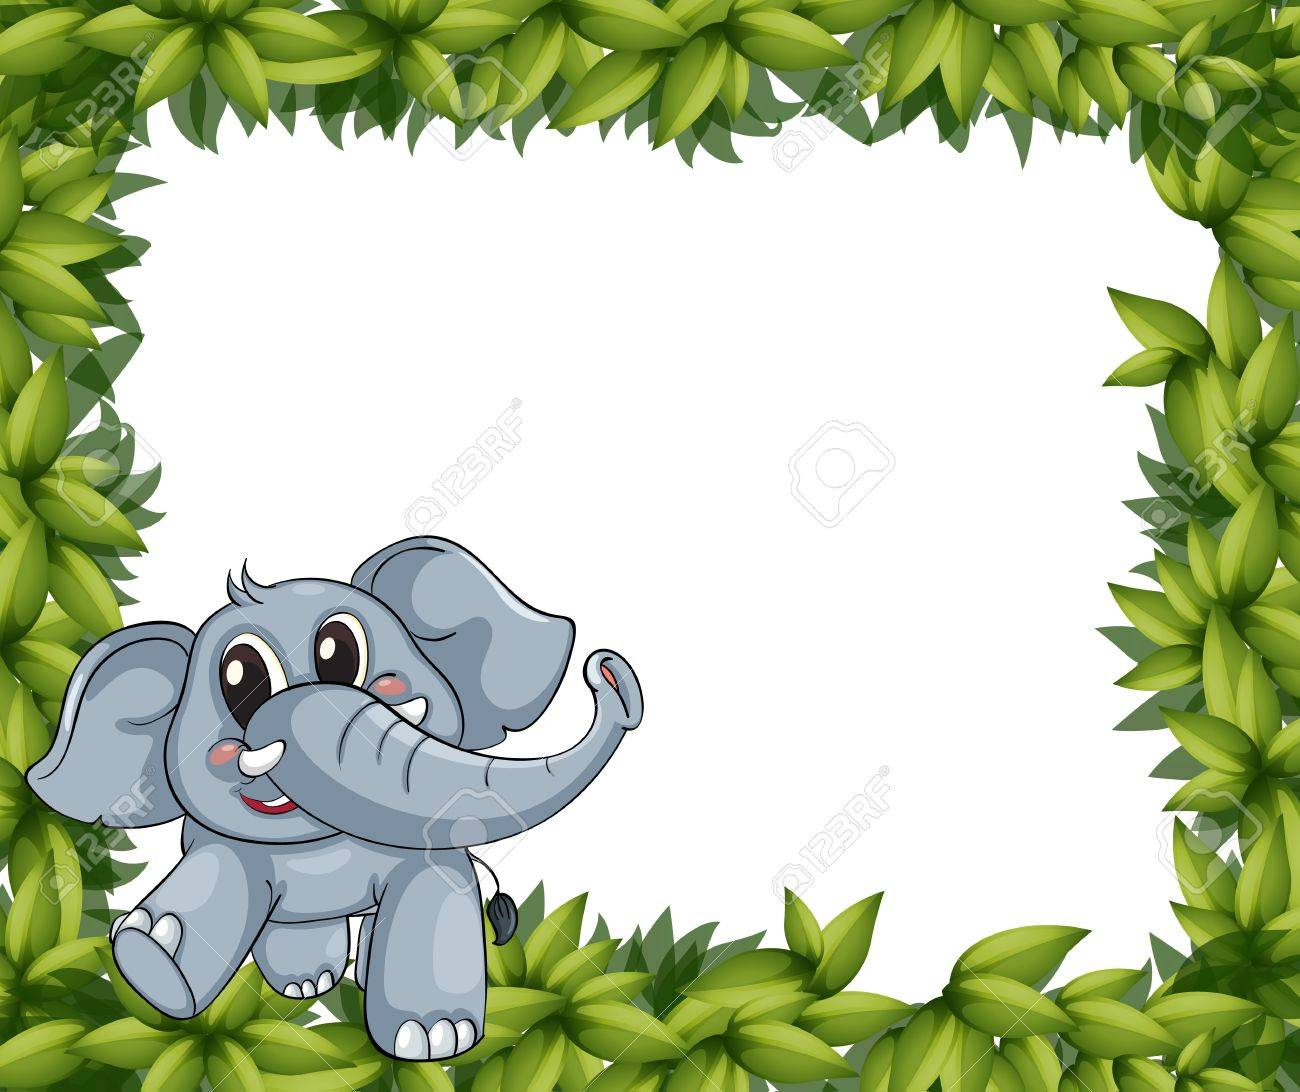 Illustration Of A Smiling Elephant And Plant Frame On A White ...